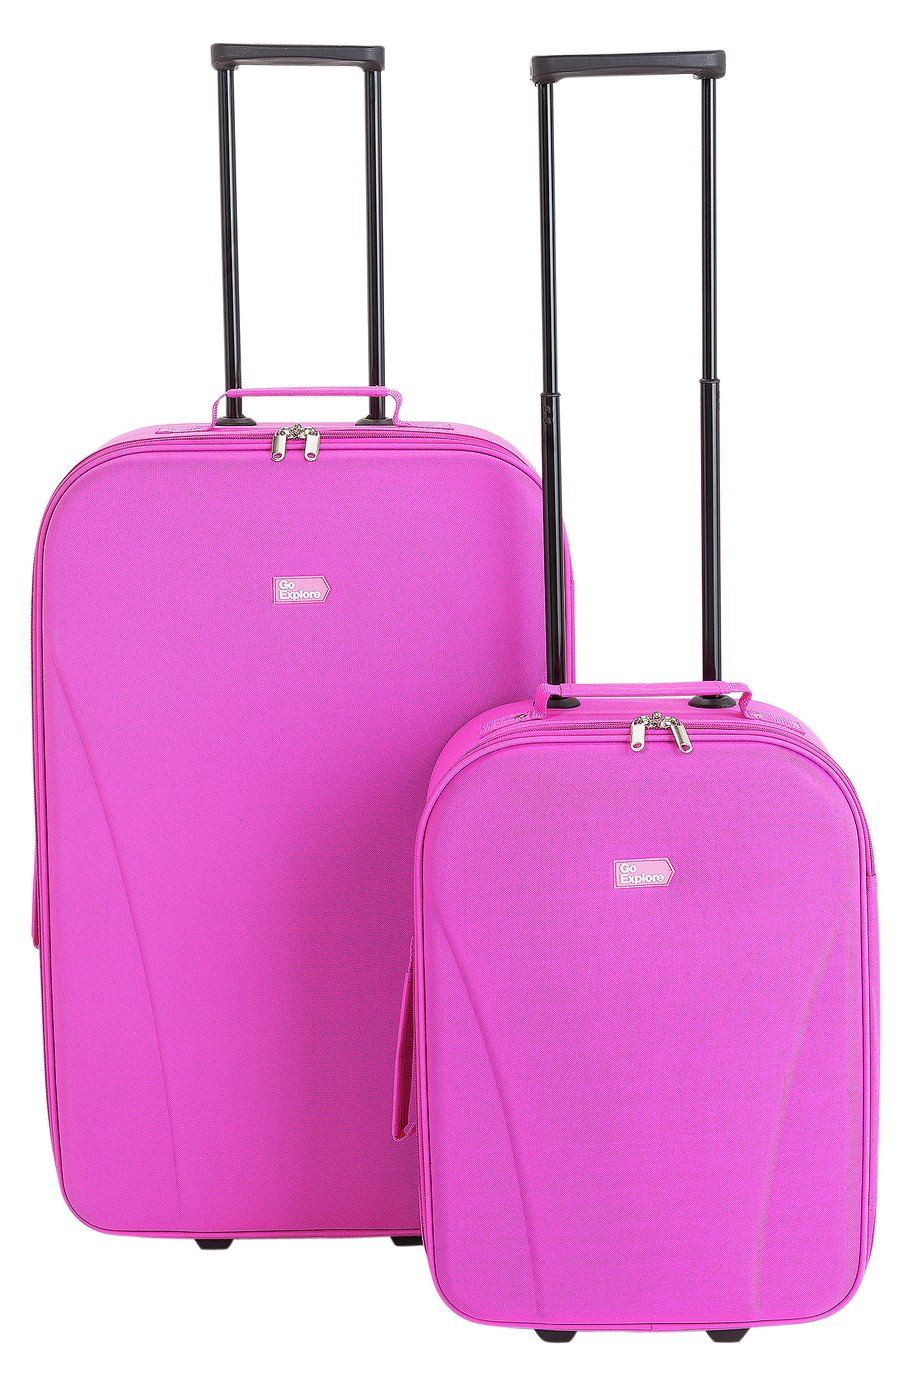 Go Explore 2 Piece Soft 2 Wheeled Luggage Set